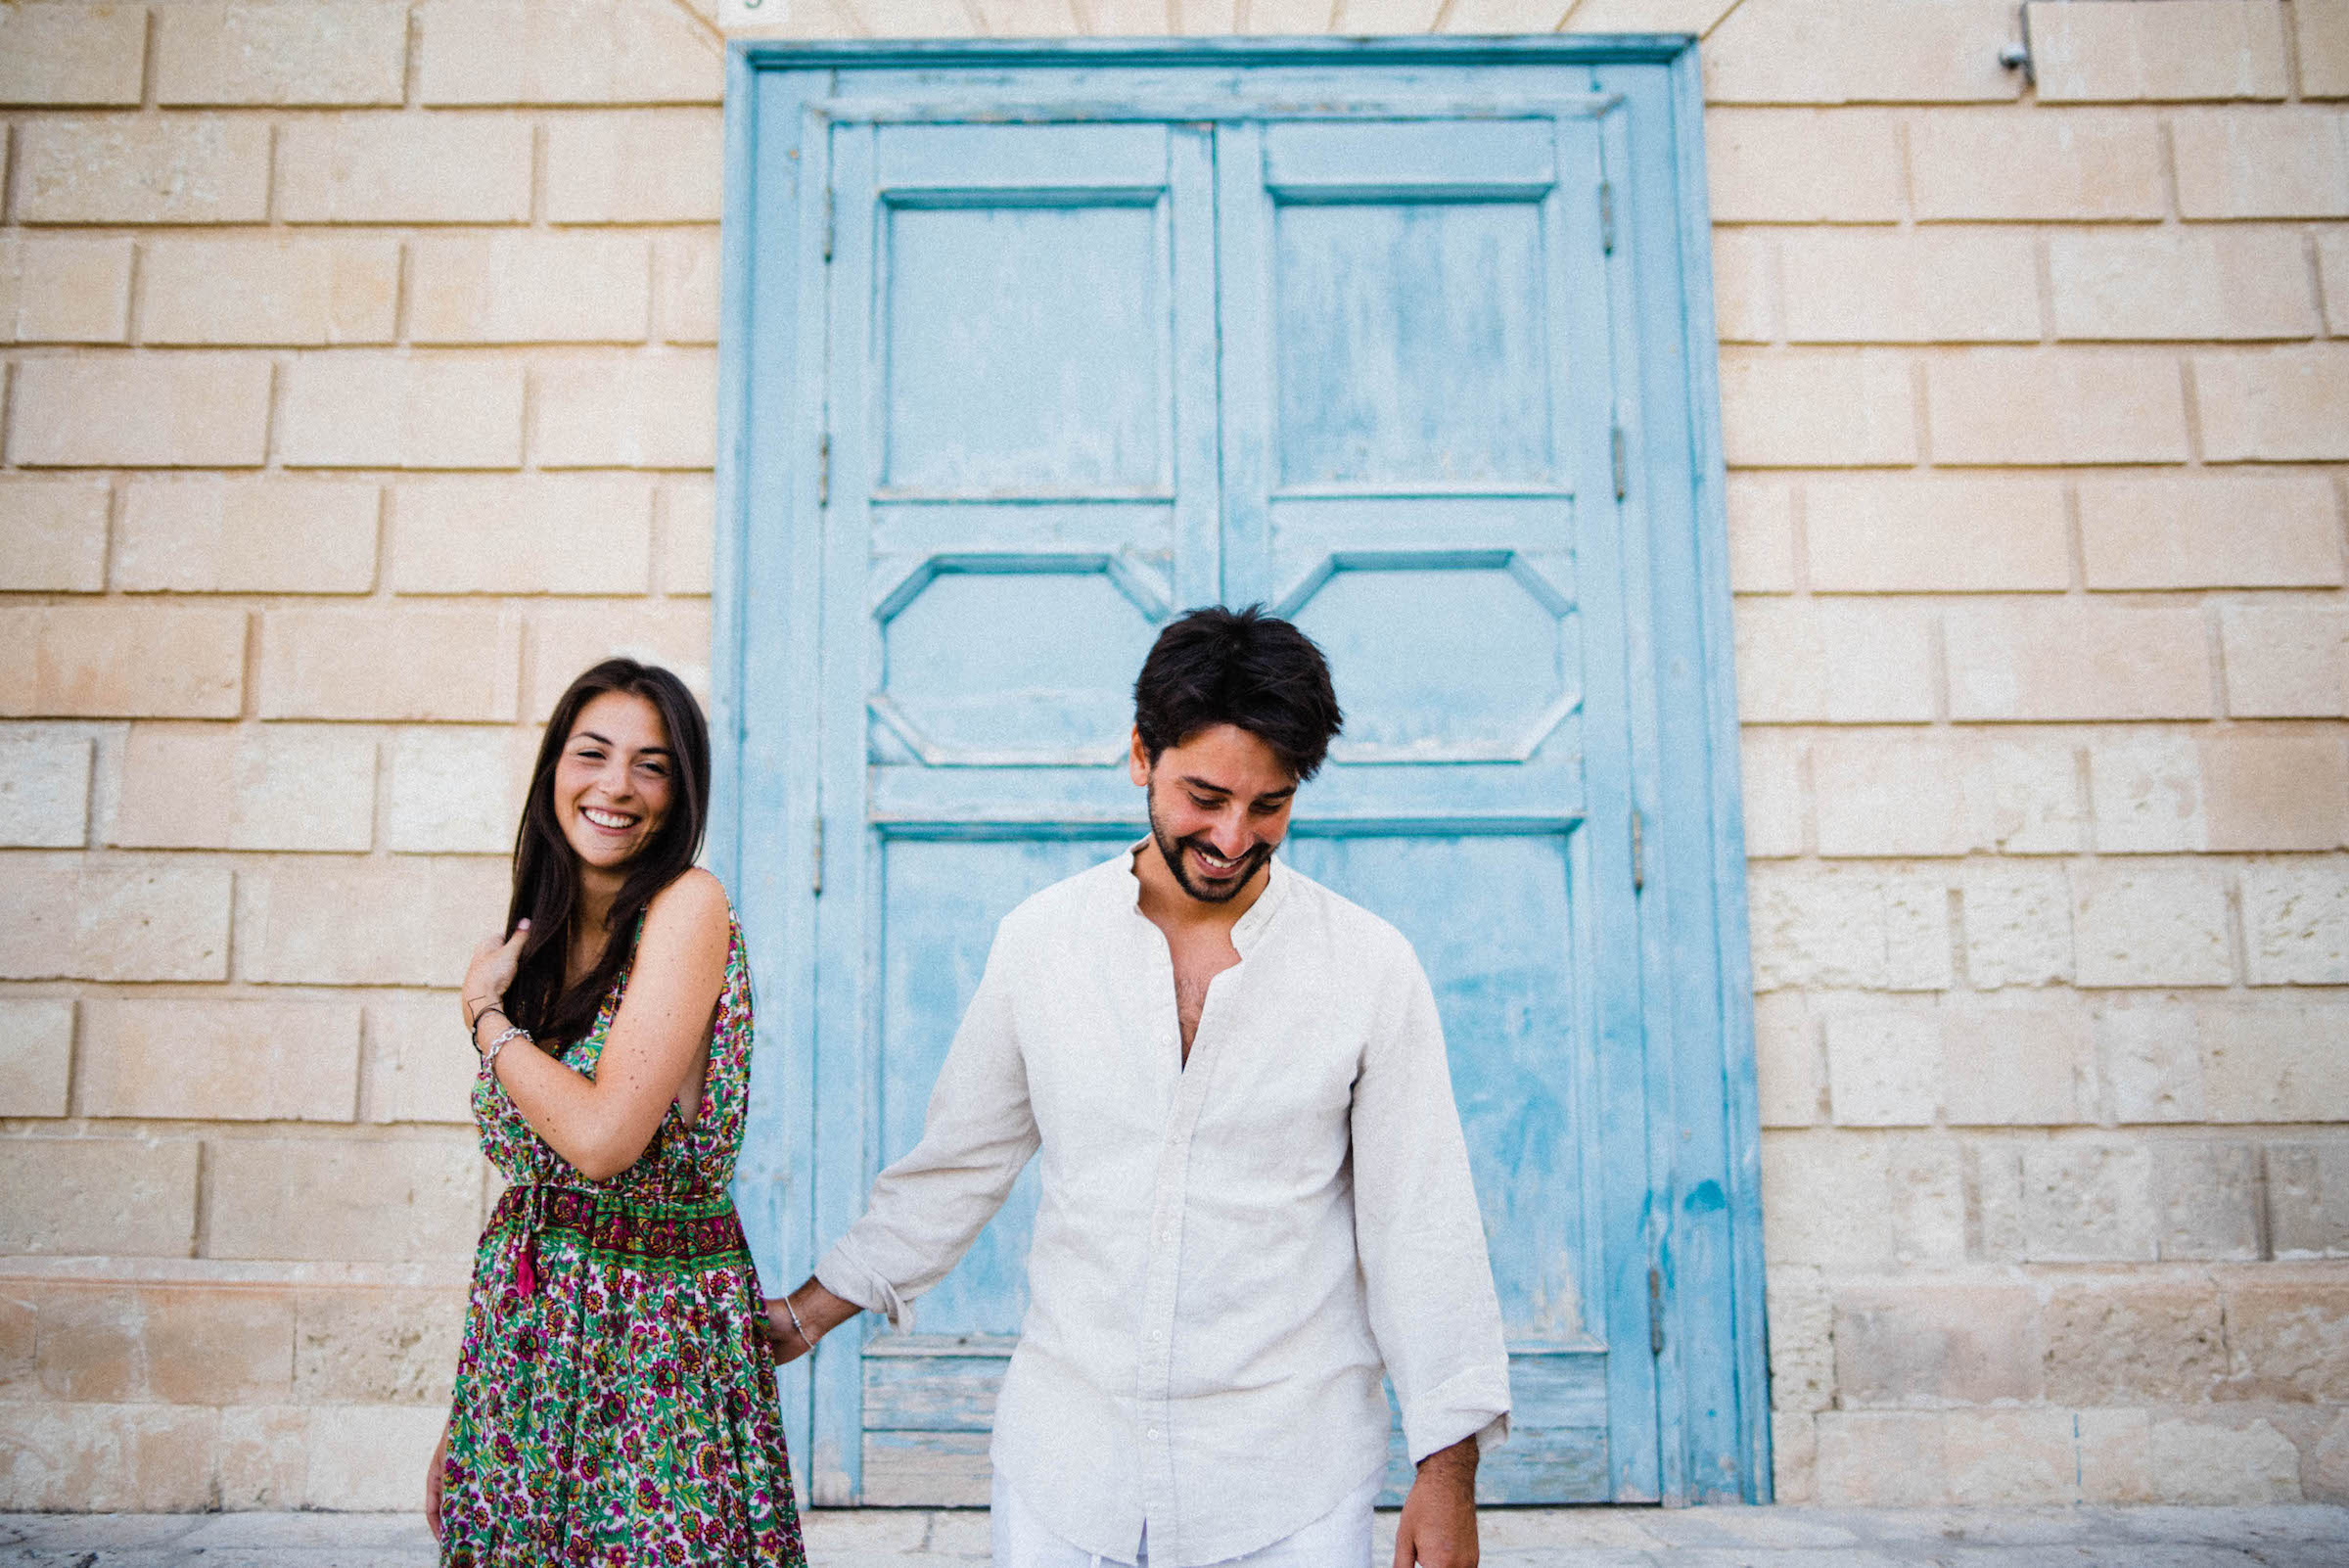 Italian Wedding Photographer's work of a couple during their Sicily Couples Photography session at Noto, standing in front of a blue door and laughing.